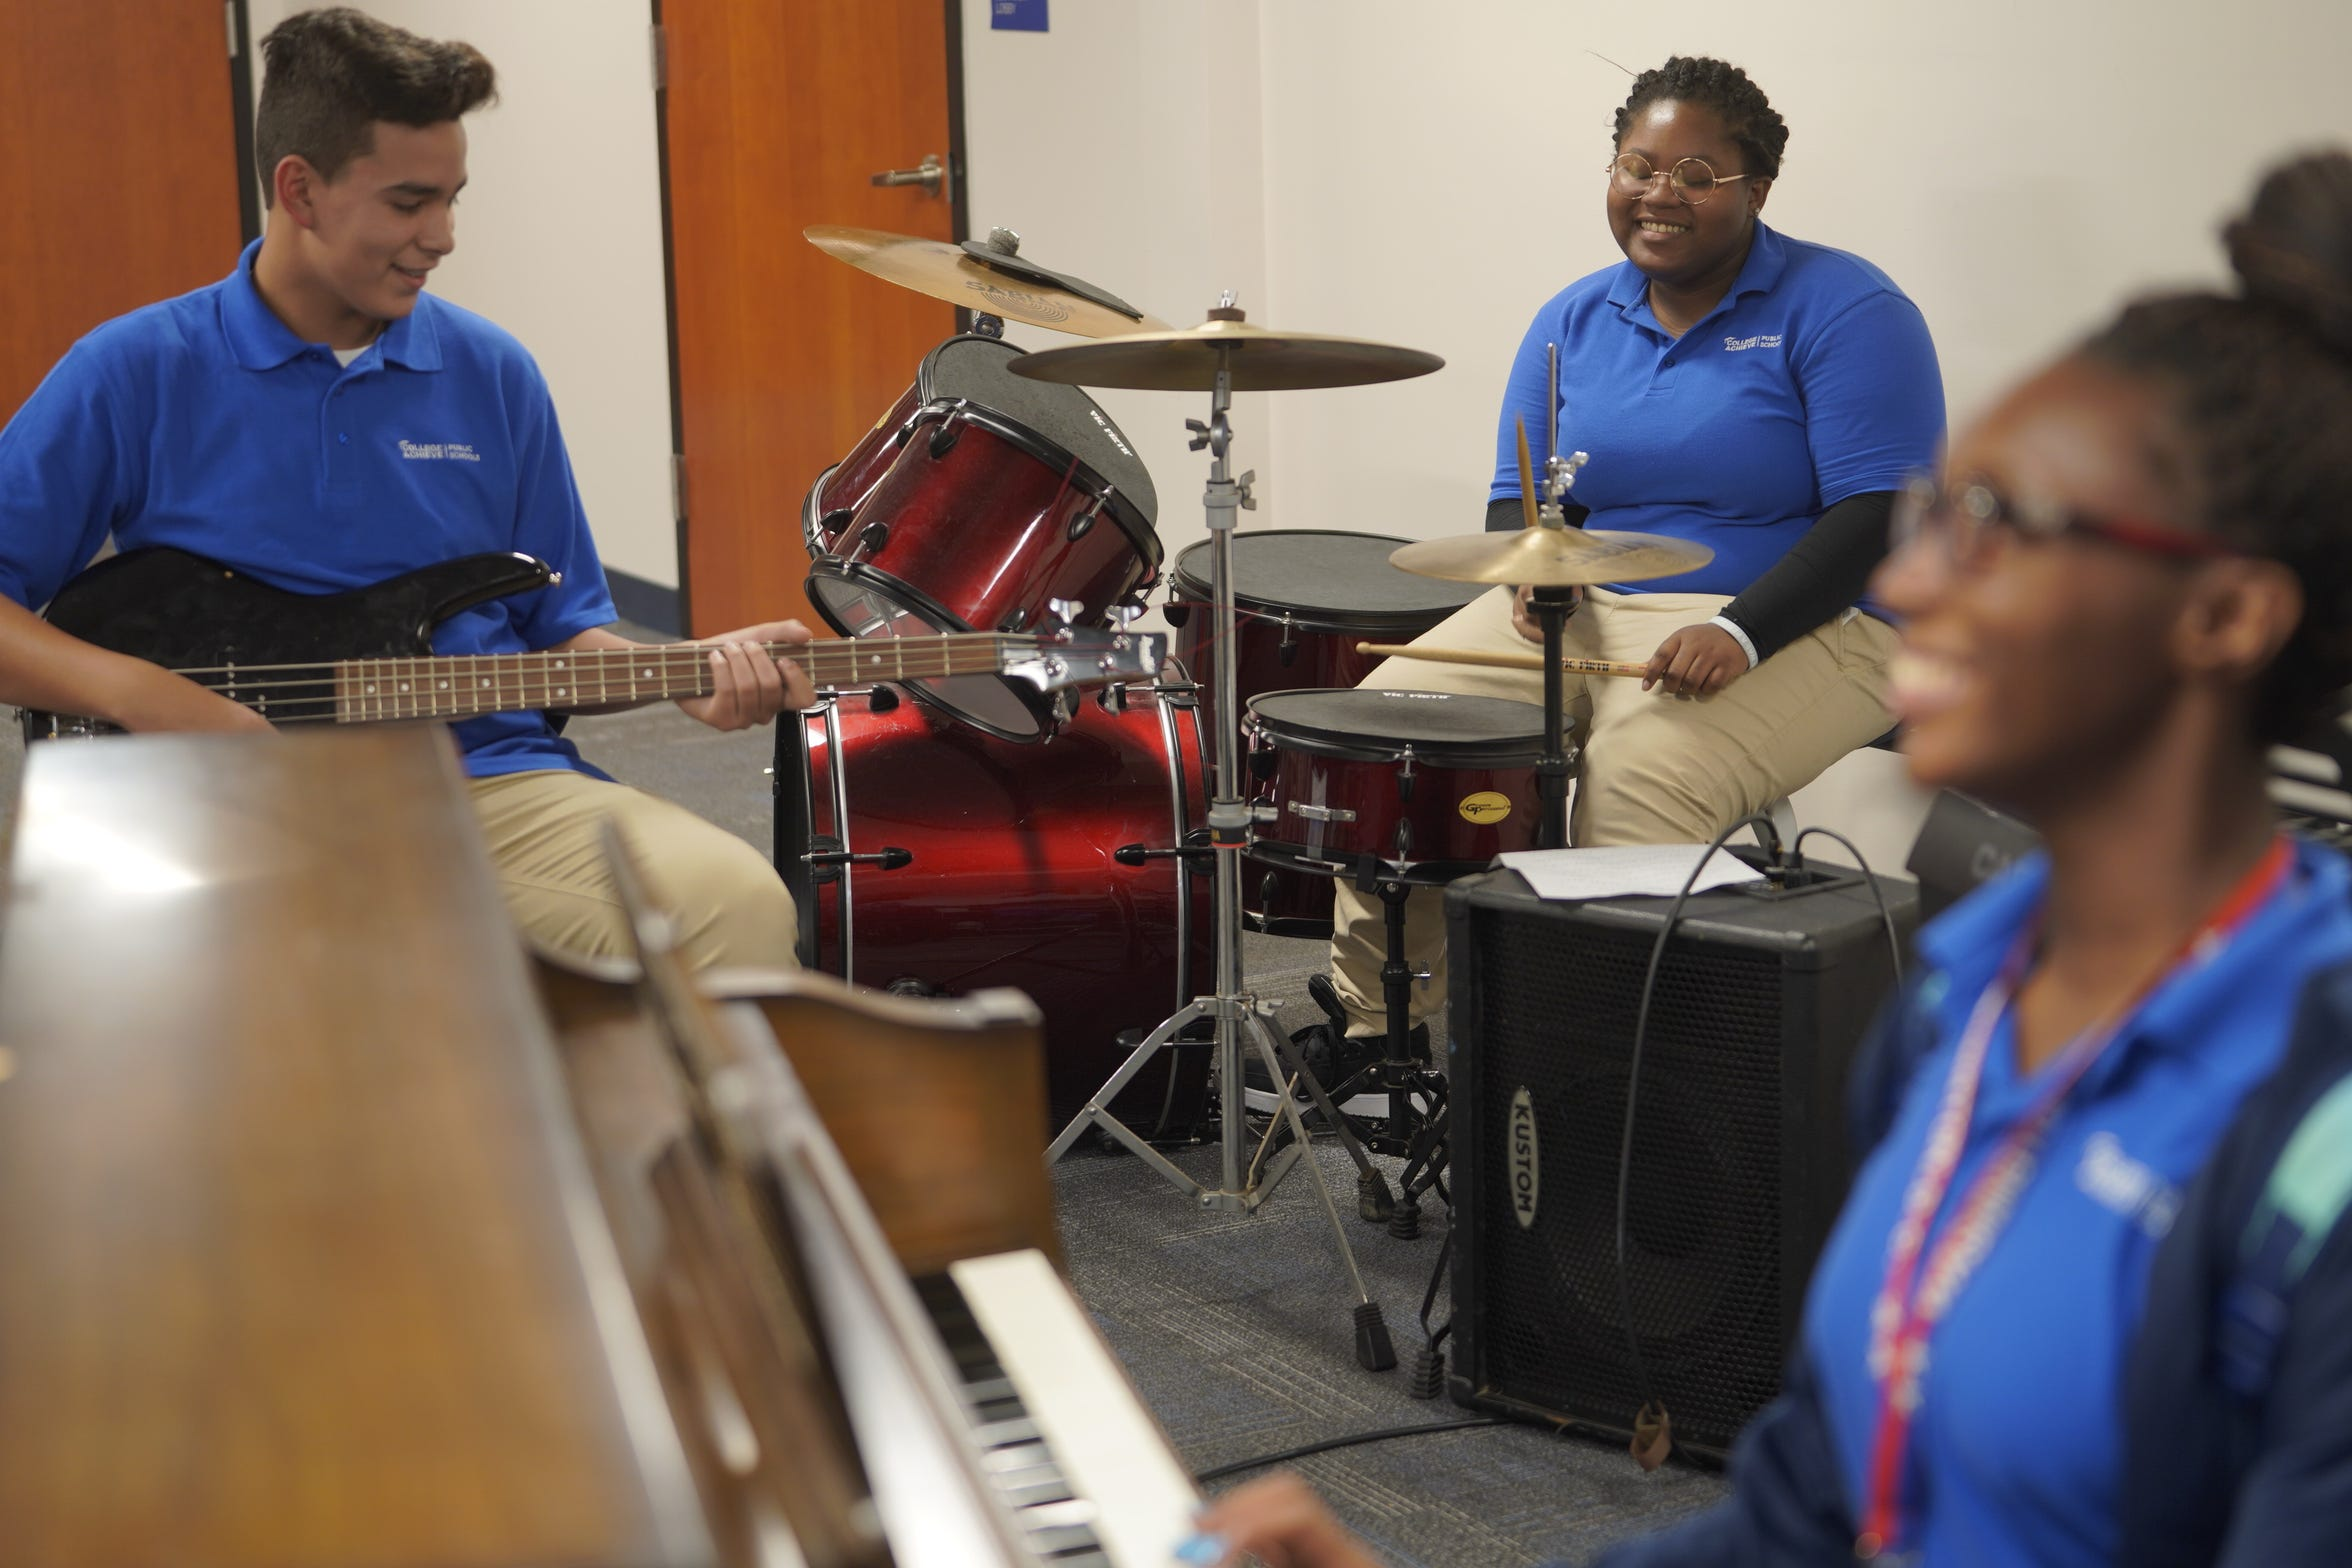 With fresh, bold blue paint on its pristine walls, College Achieve Central High School welcomed its first students Aug. 27. More than 300 students from Somerset, Middlesex and Union counties have been enrolled in the charter high school.